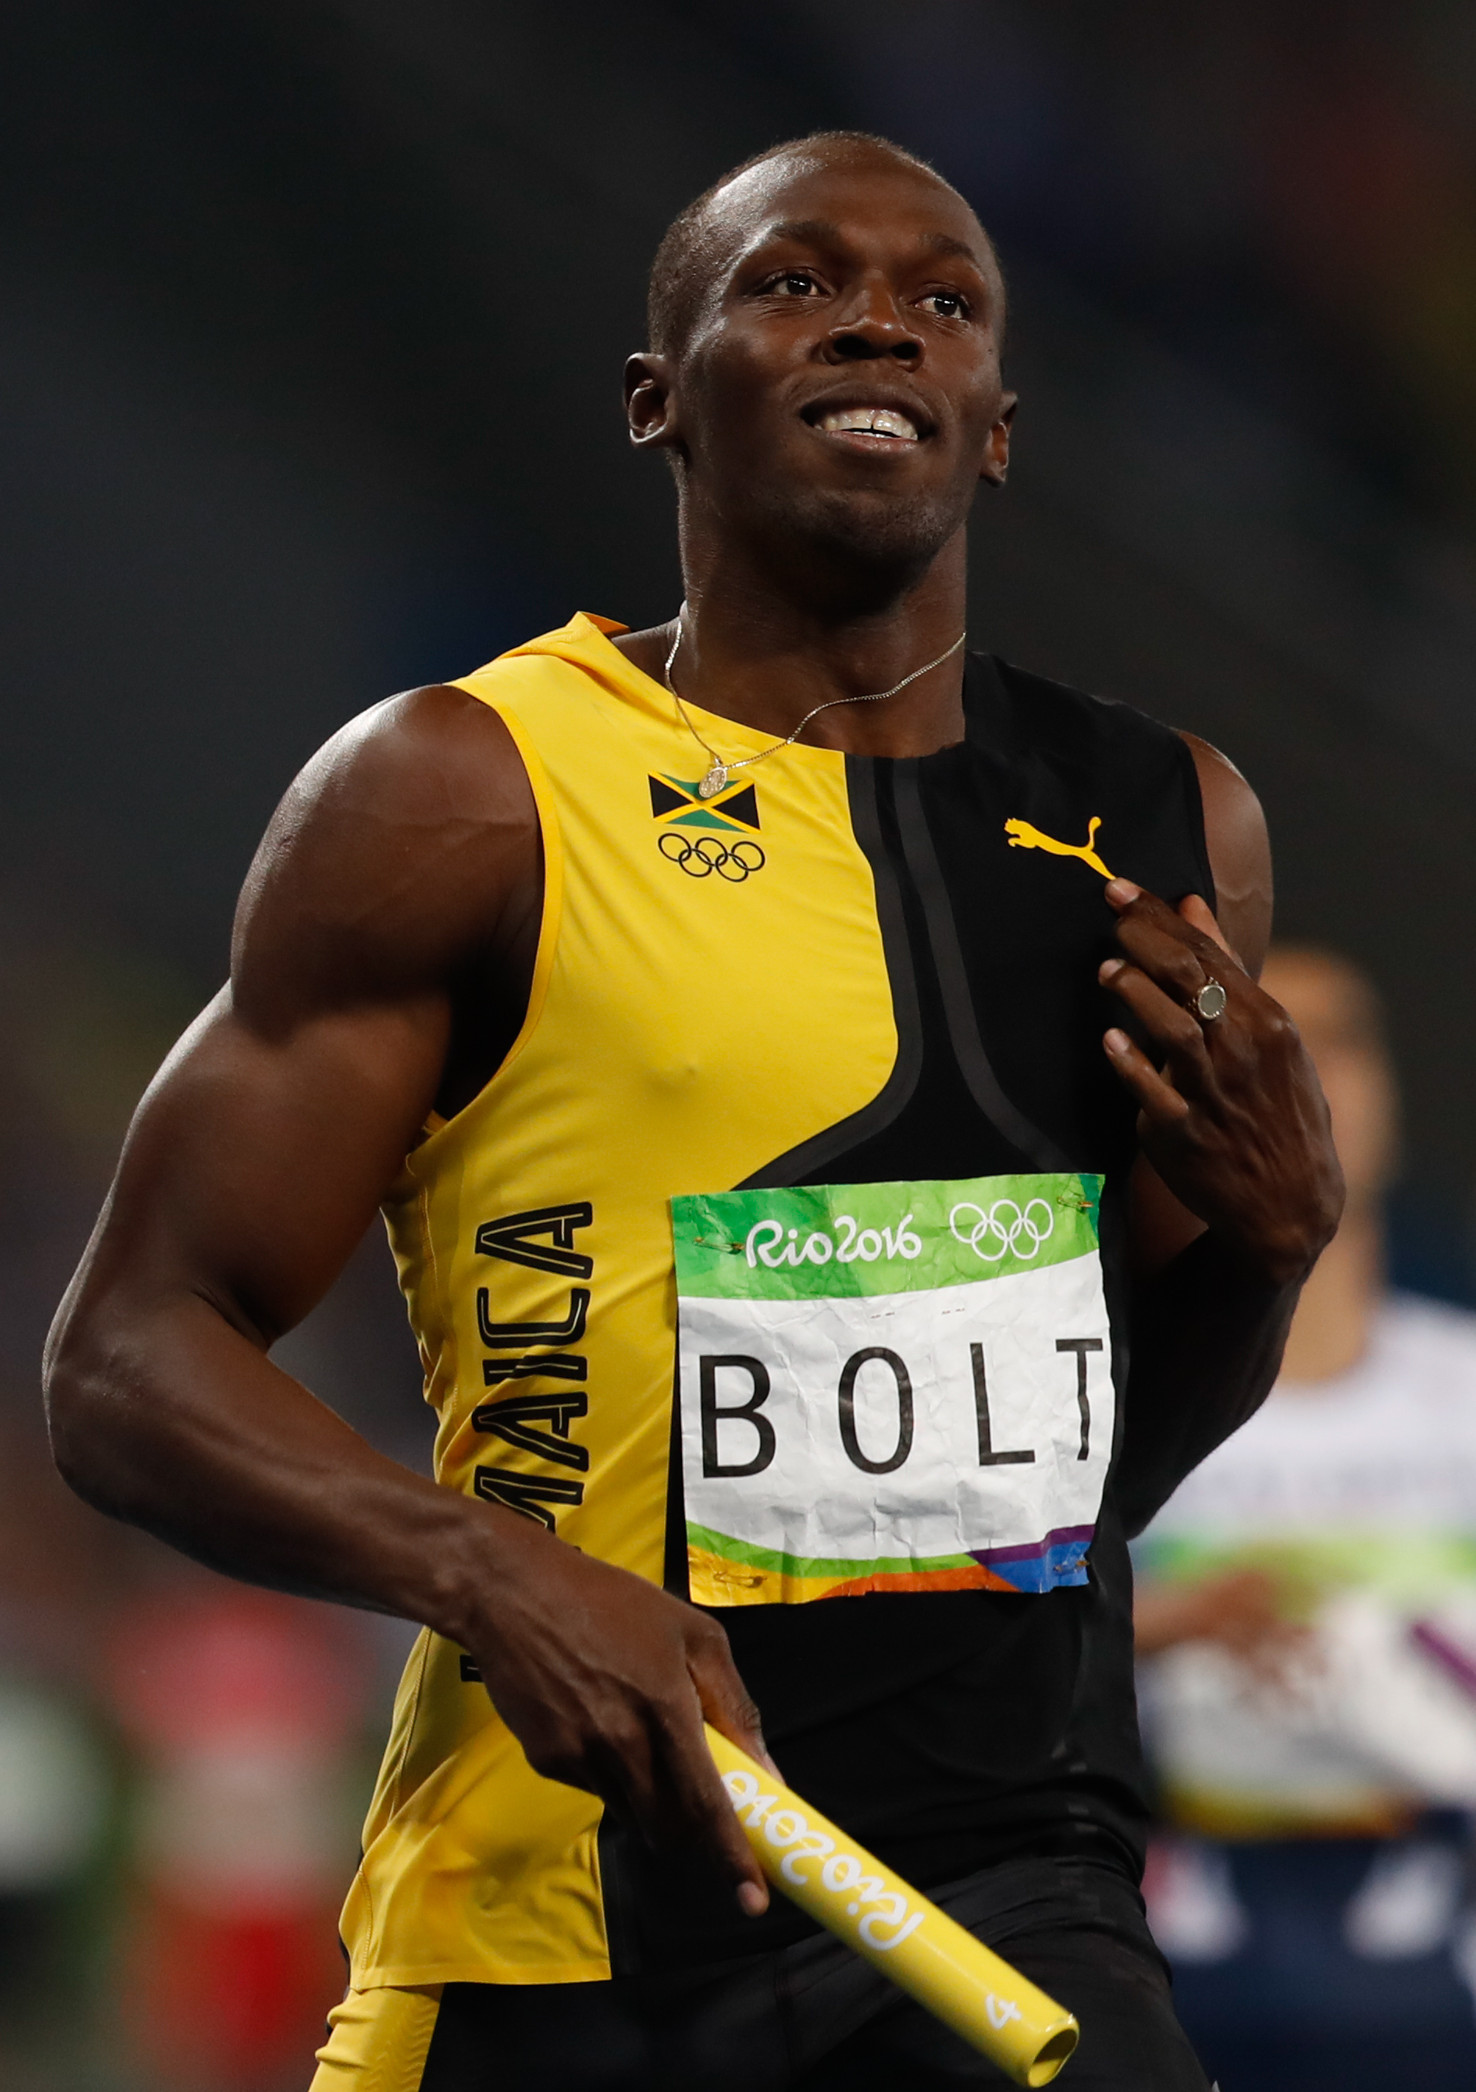 Image Result For Bolt